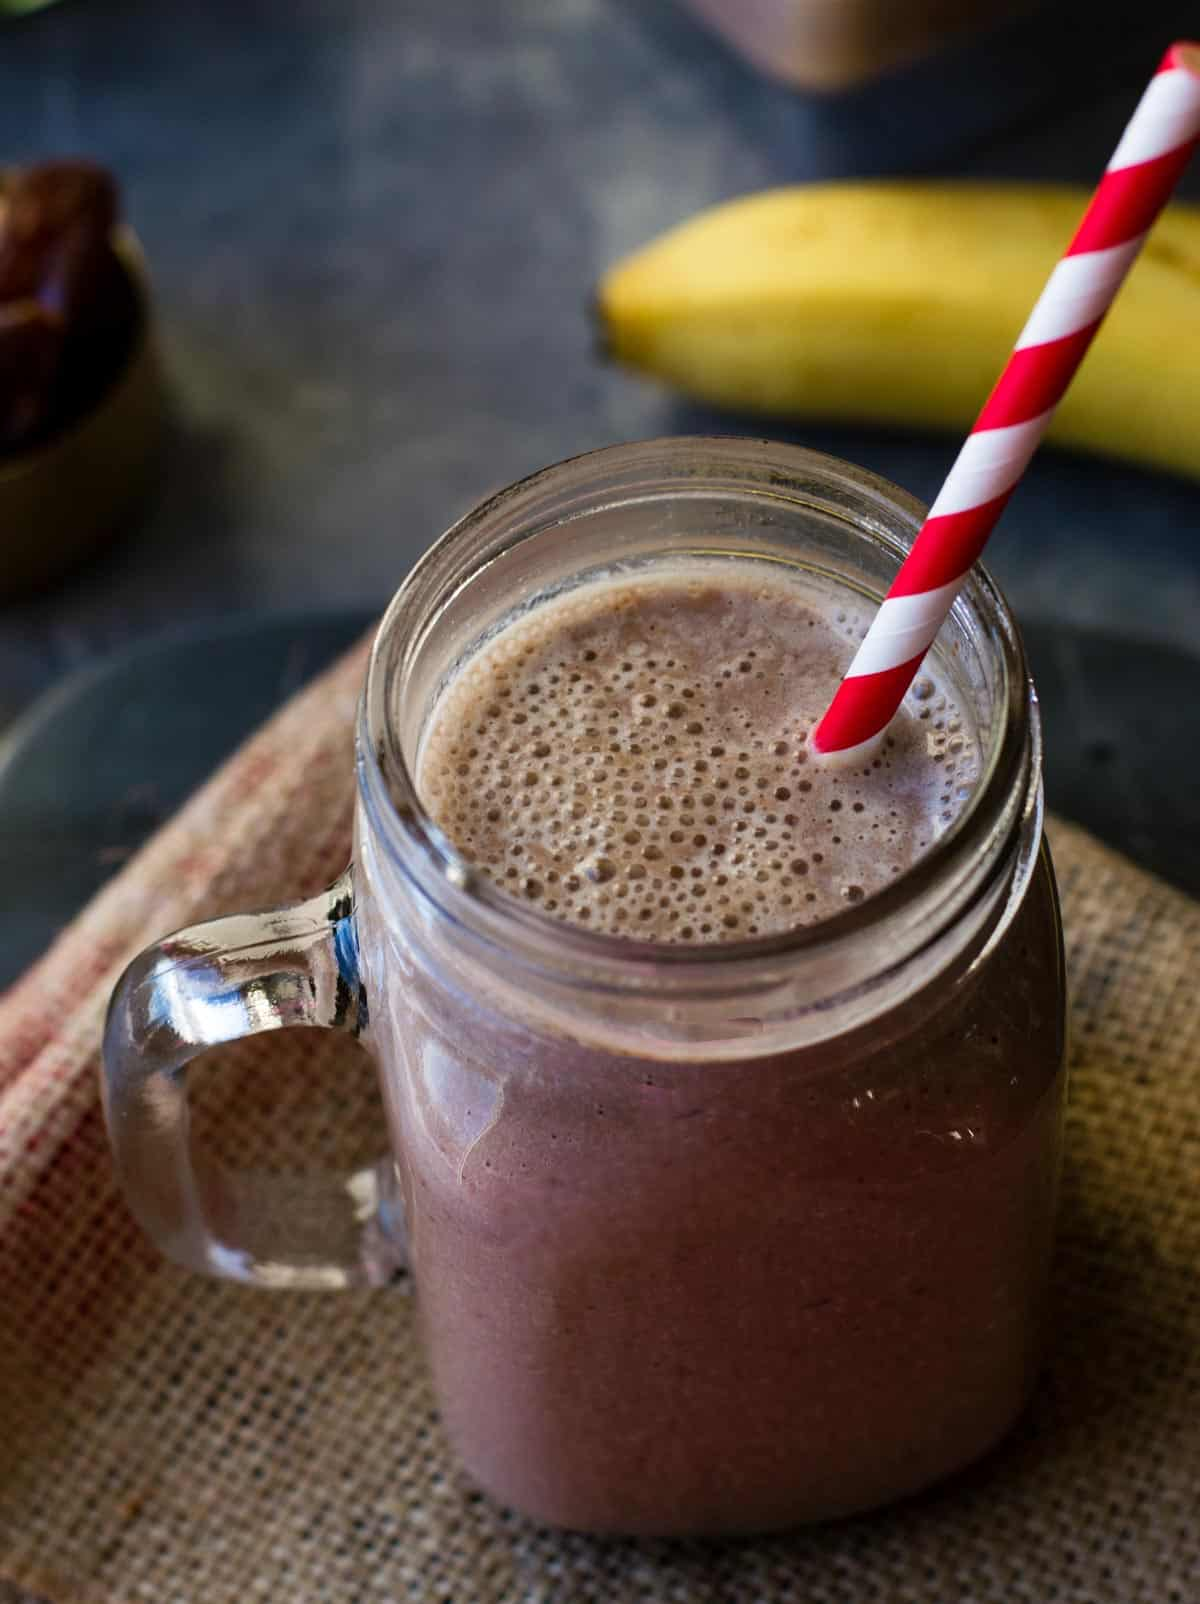 Chocolate almond smoothie served in a glass jar with a red and white straw